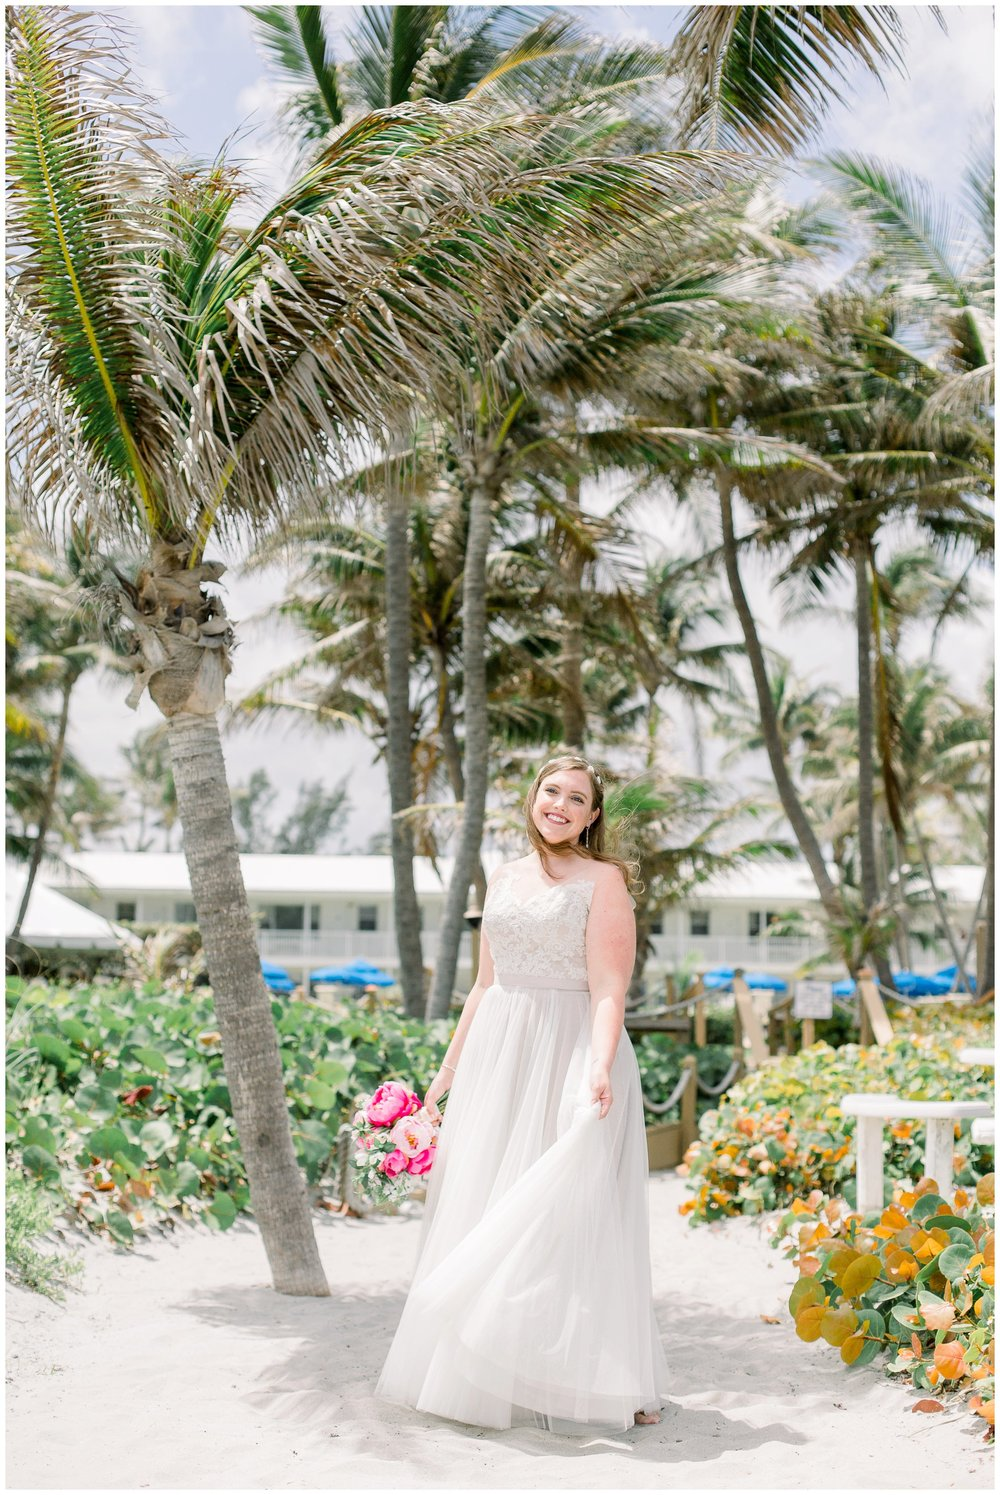 South Florida Wedding Photographer- Palm Beach Wedding Photographer- Jupiter Wedding Photographer- Florida Photographer- Wright by the Sea Wedding- Wright by the Sea- Sturat Florida Wedding_0018.jpg